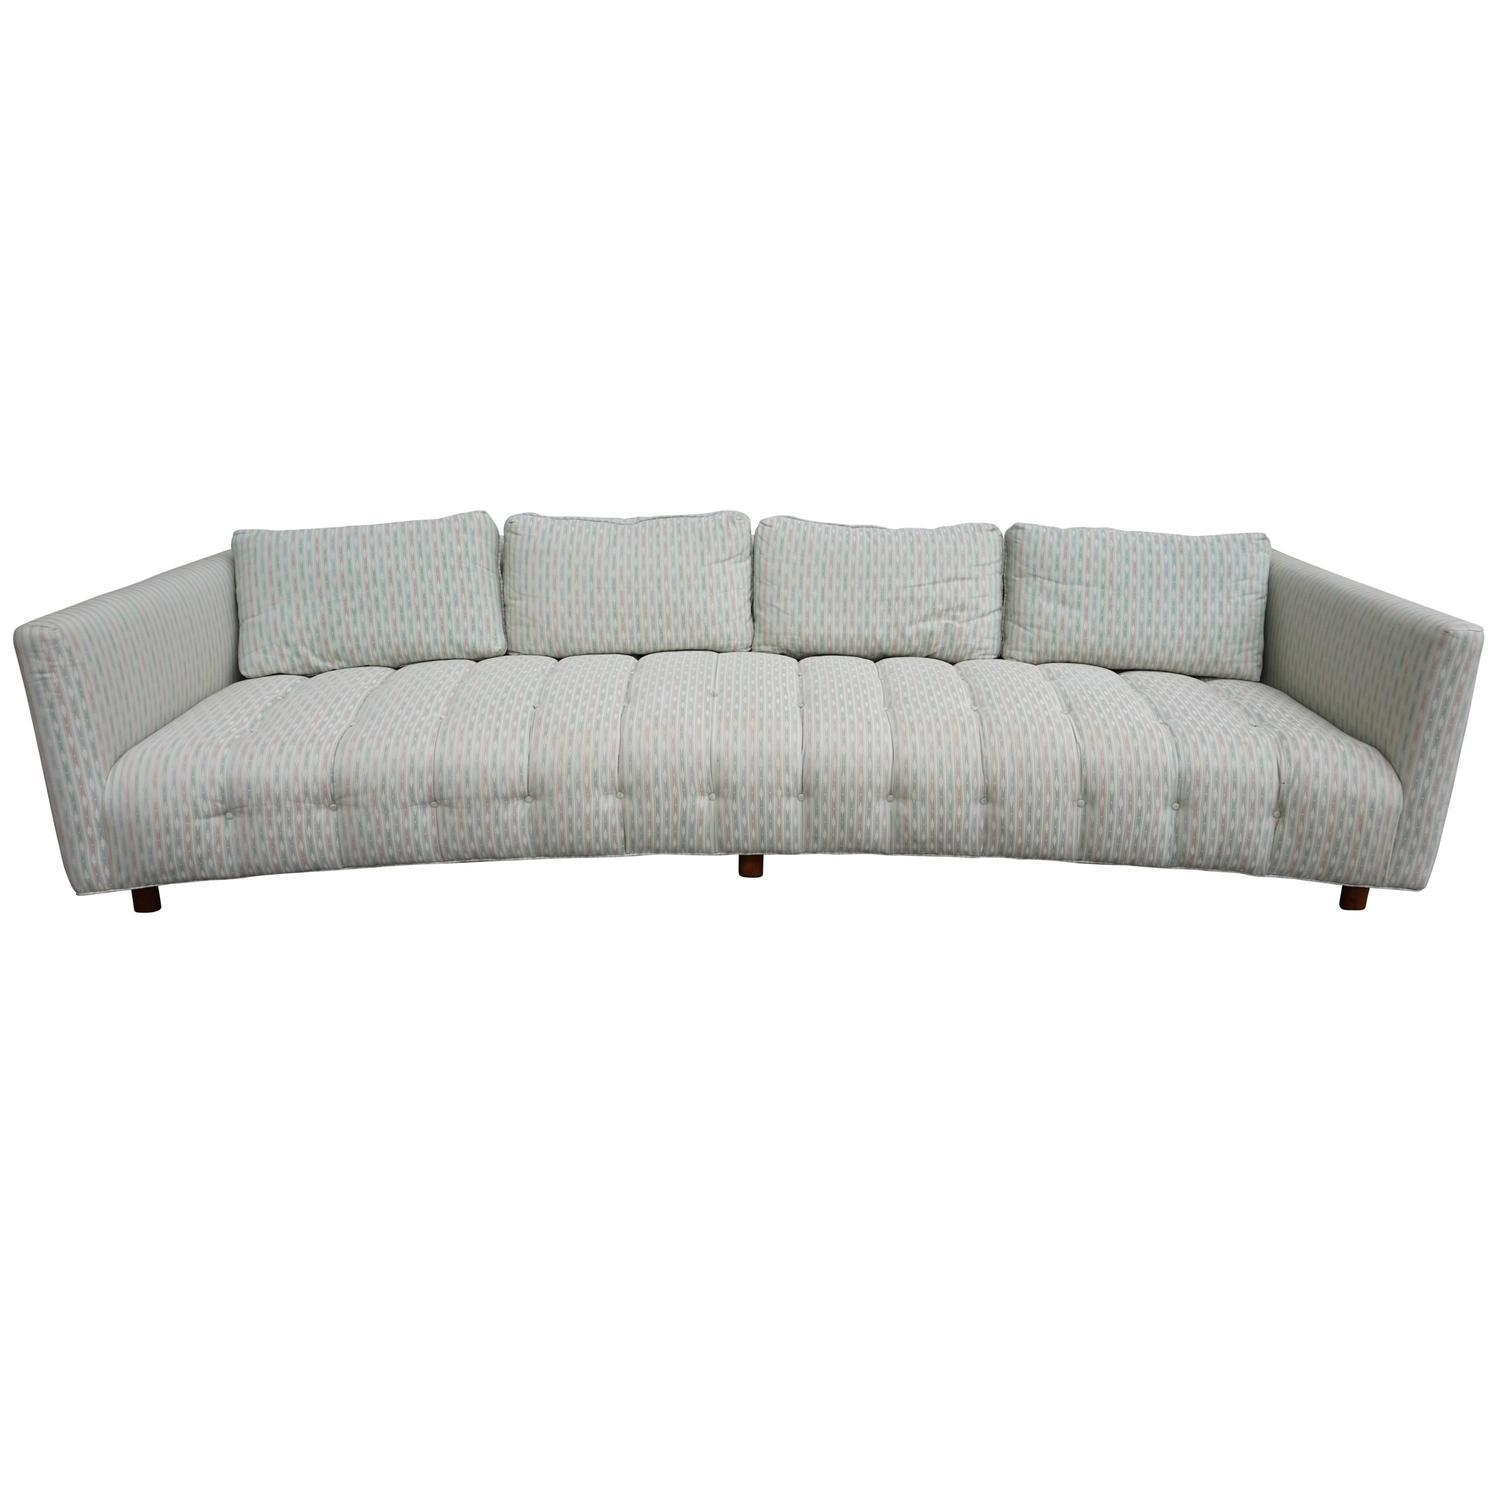 Long And Low Mid Century Sofa With Rounded Back At 1Stdibs Regarding Long Modern Sofas (Image 10 of 20)